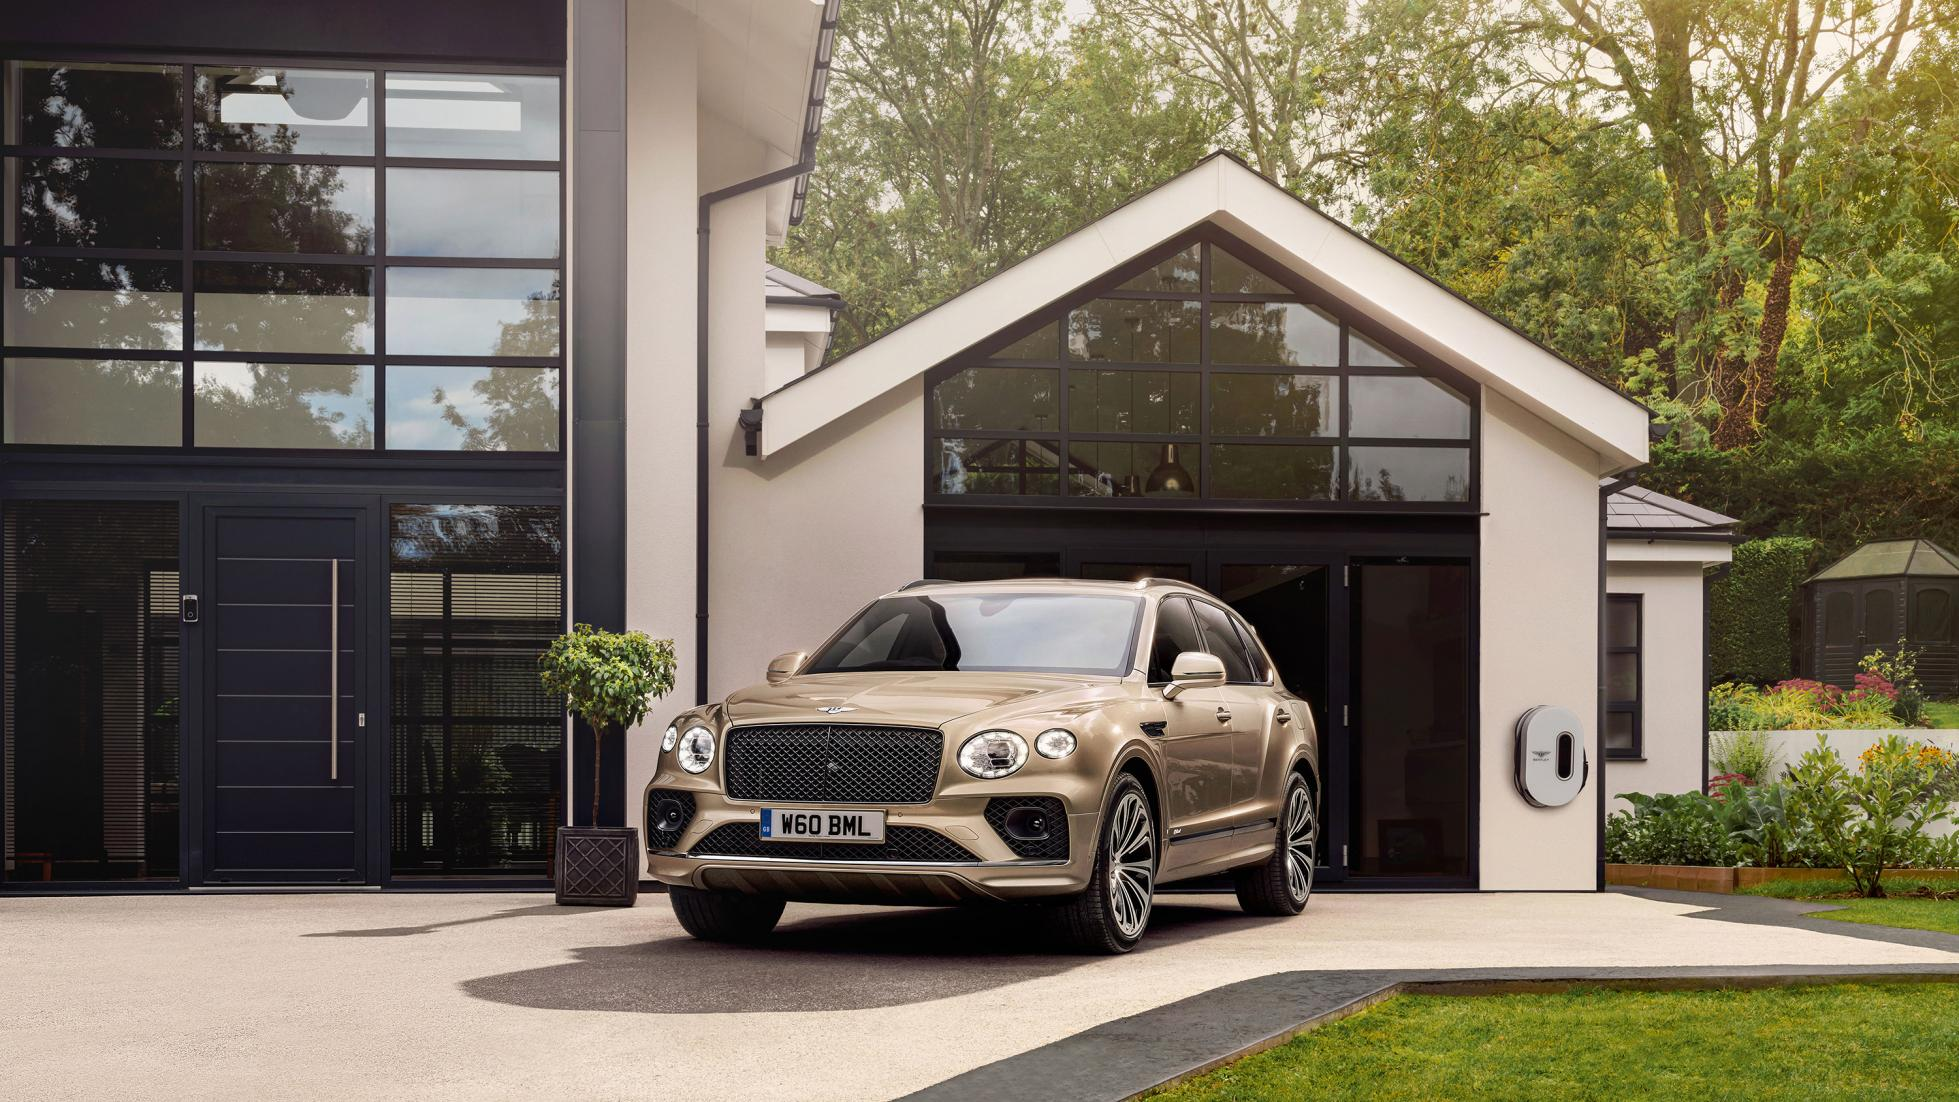 Bentley Bentayga Hybrid - Concept: Parked